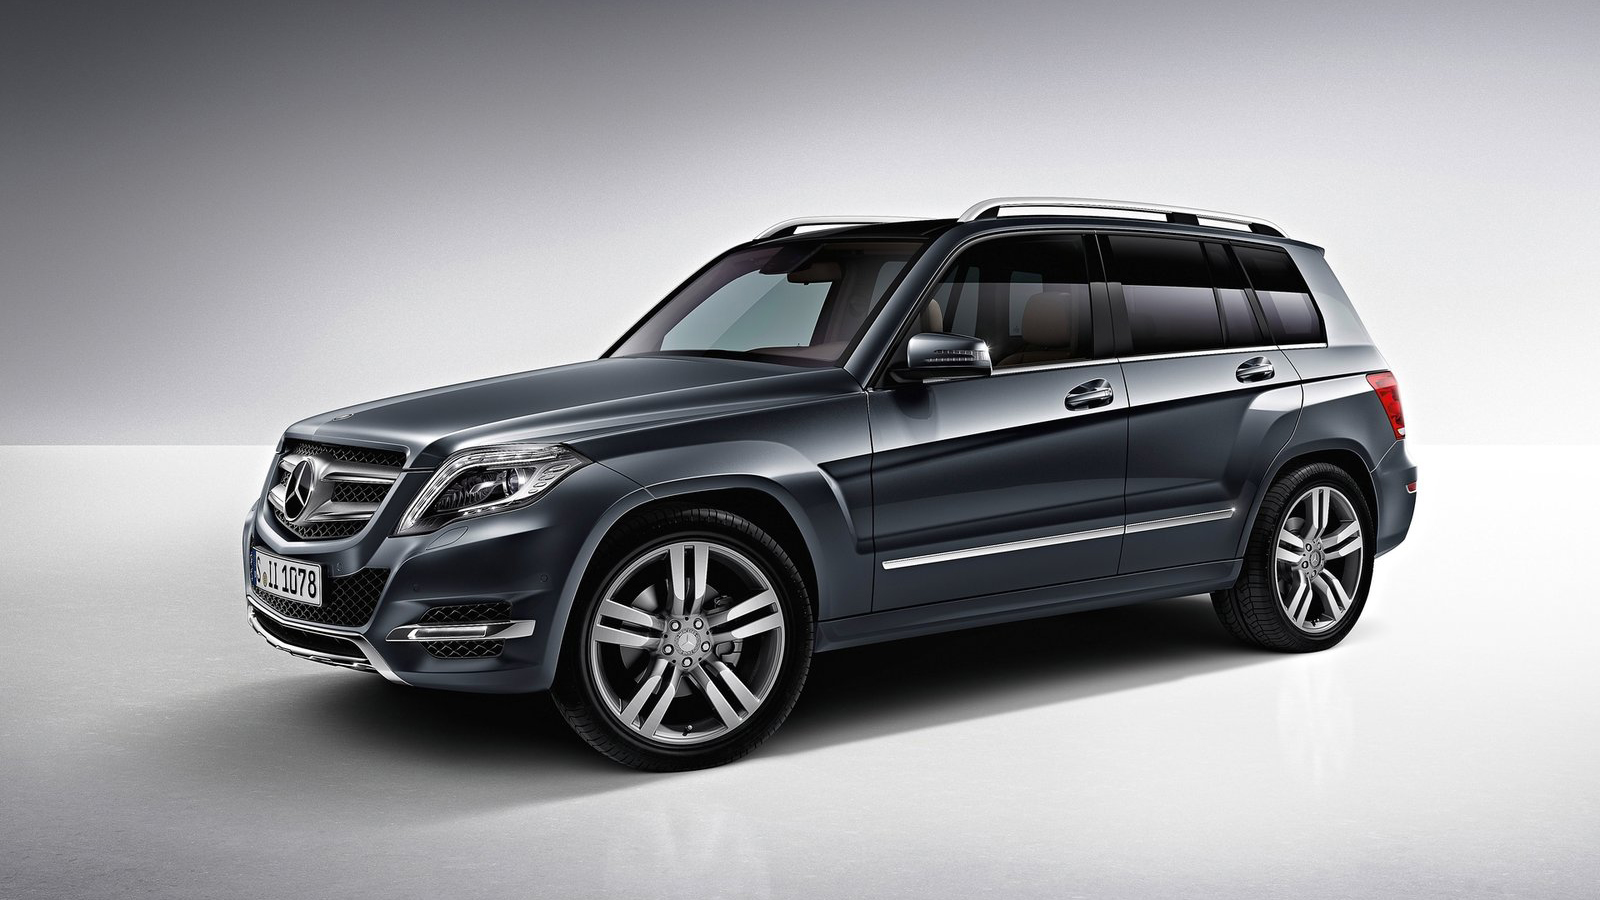 Car wallpapers in good images 2013 mercedes benz glk class for Is a mercedes benz a good car